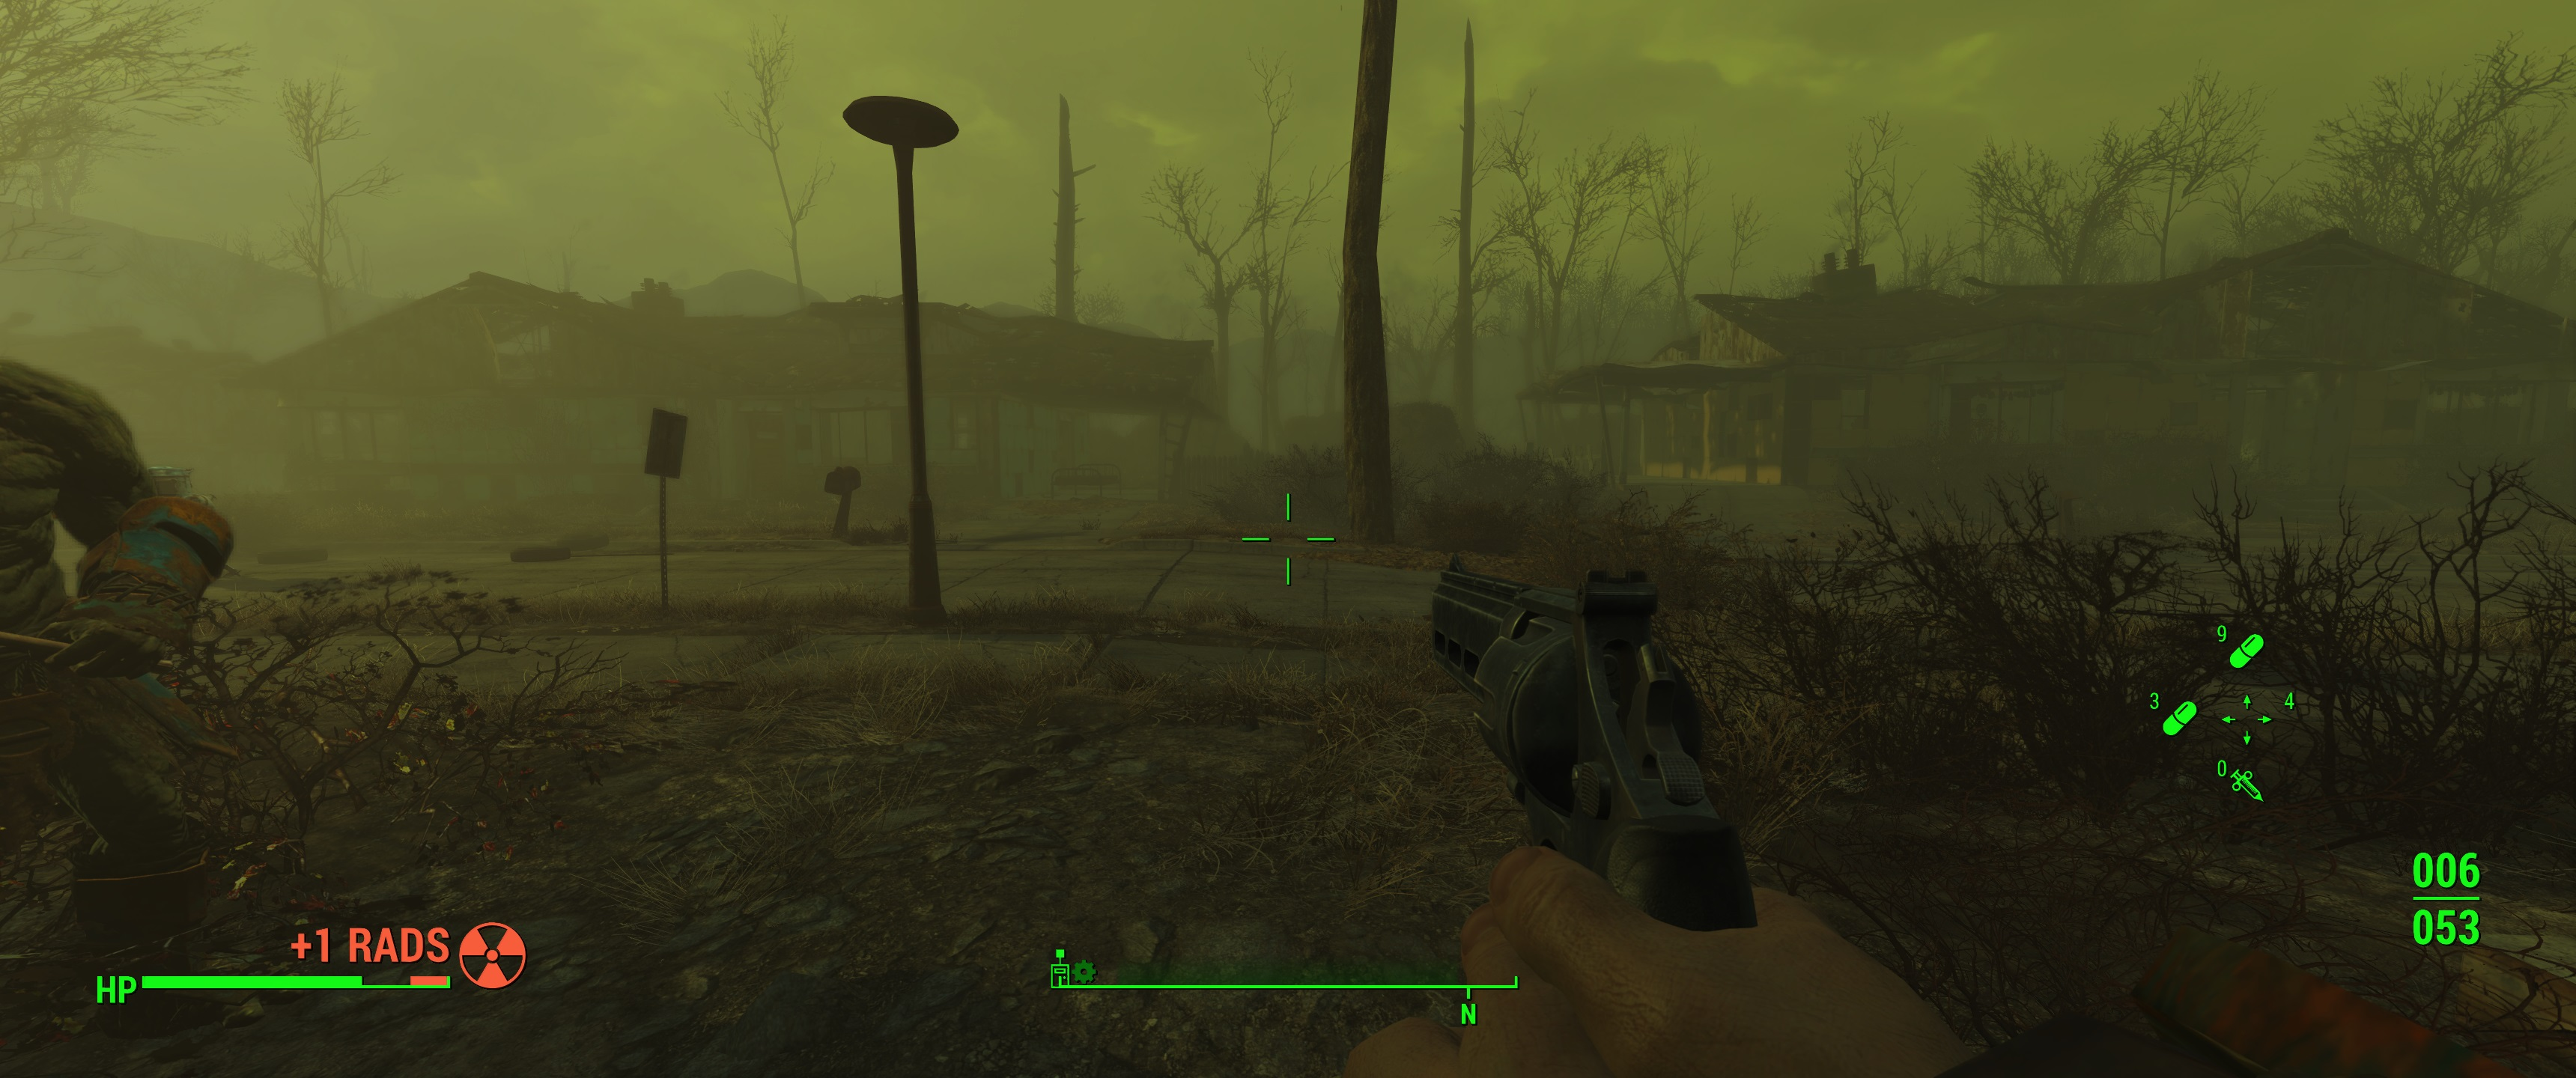 WSGF • View topic - Fallout 4 21:9